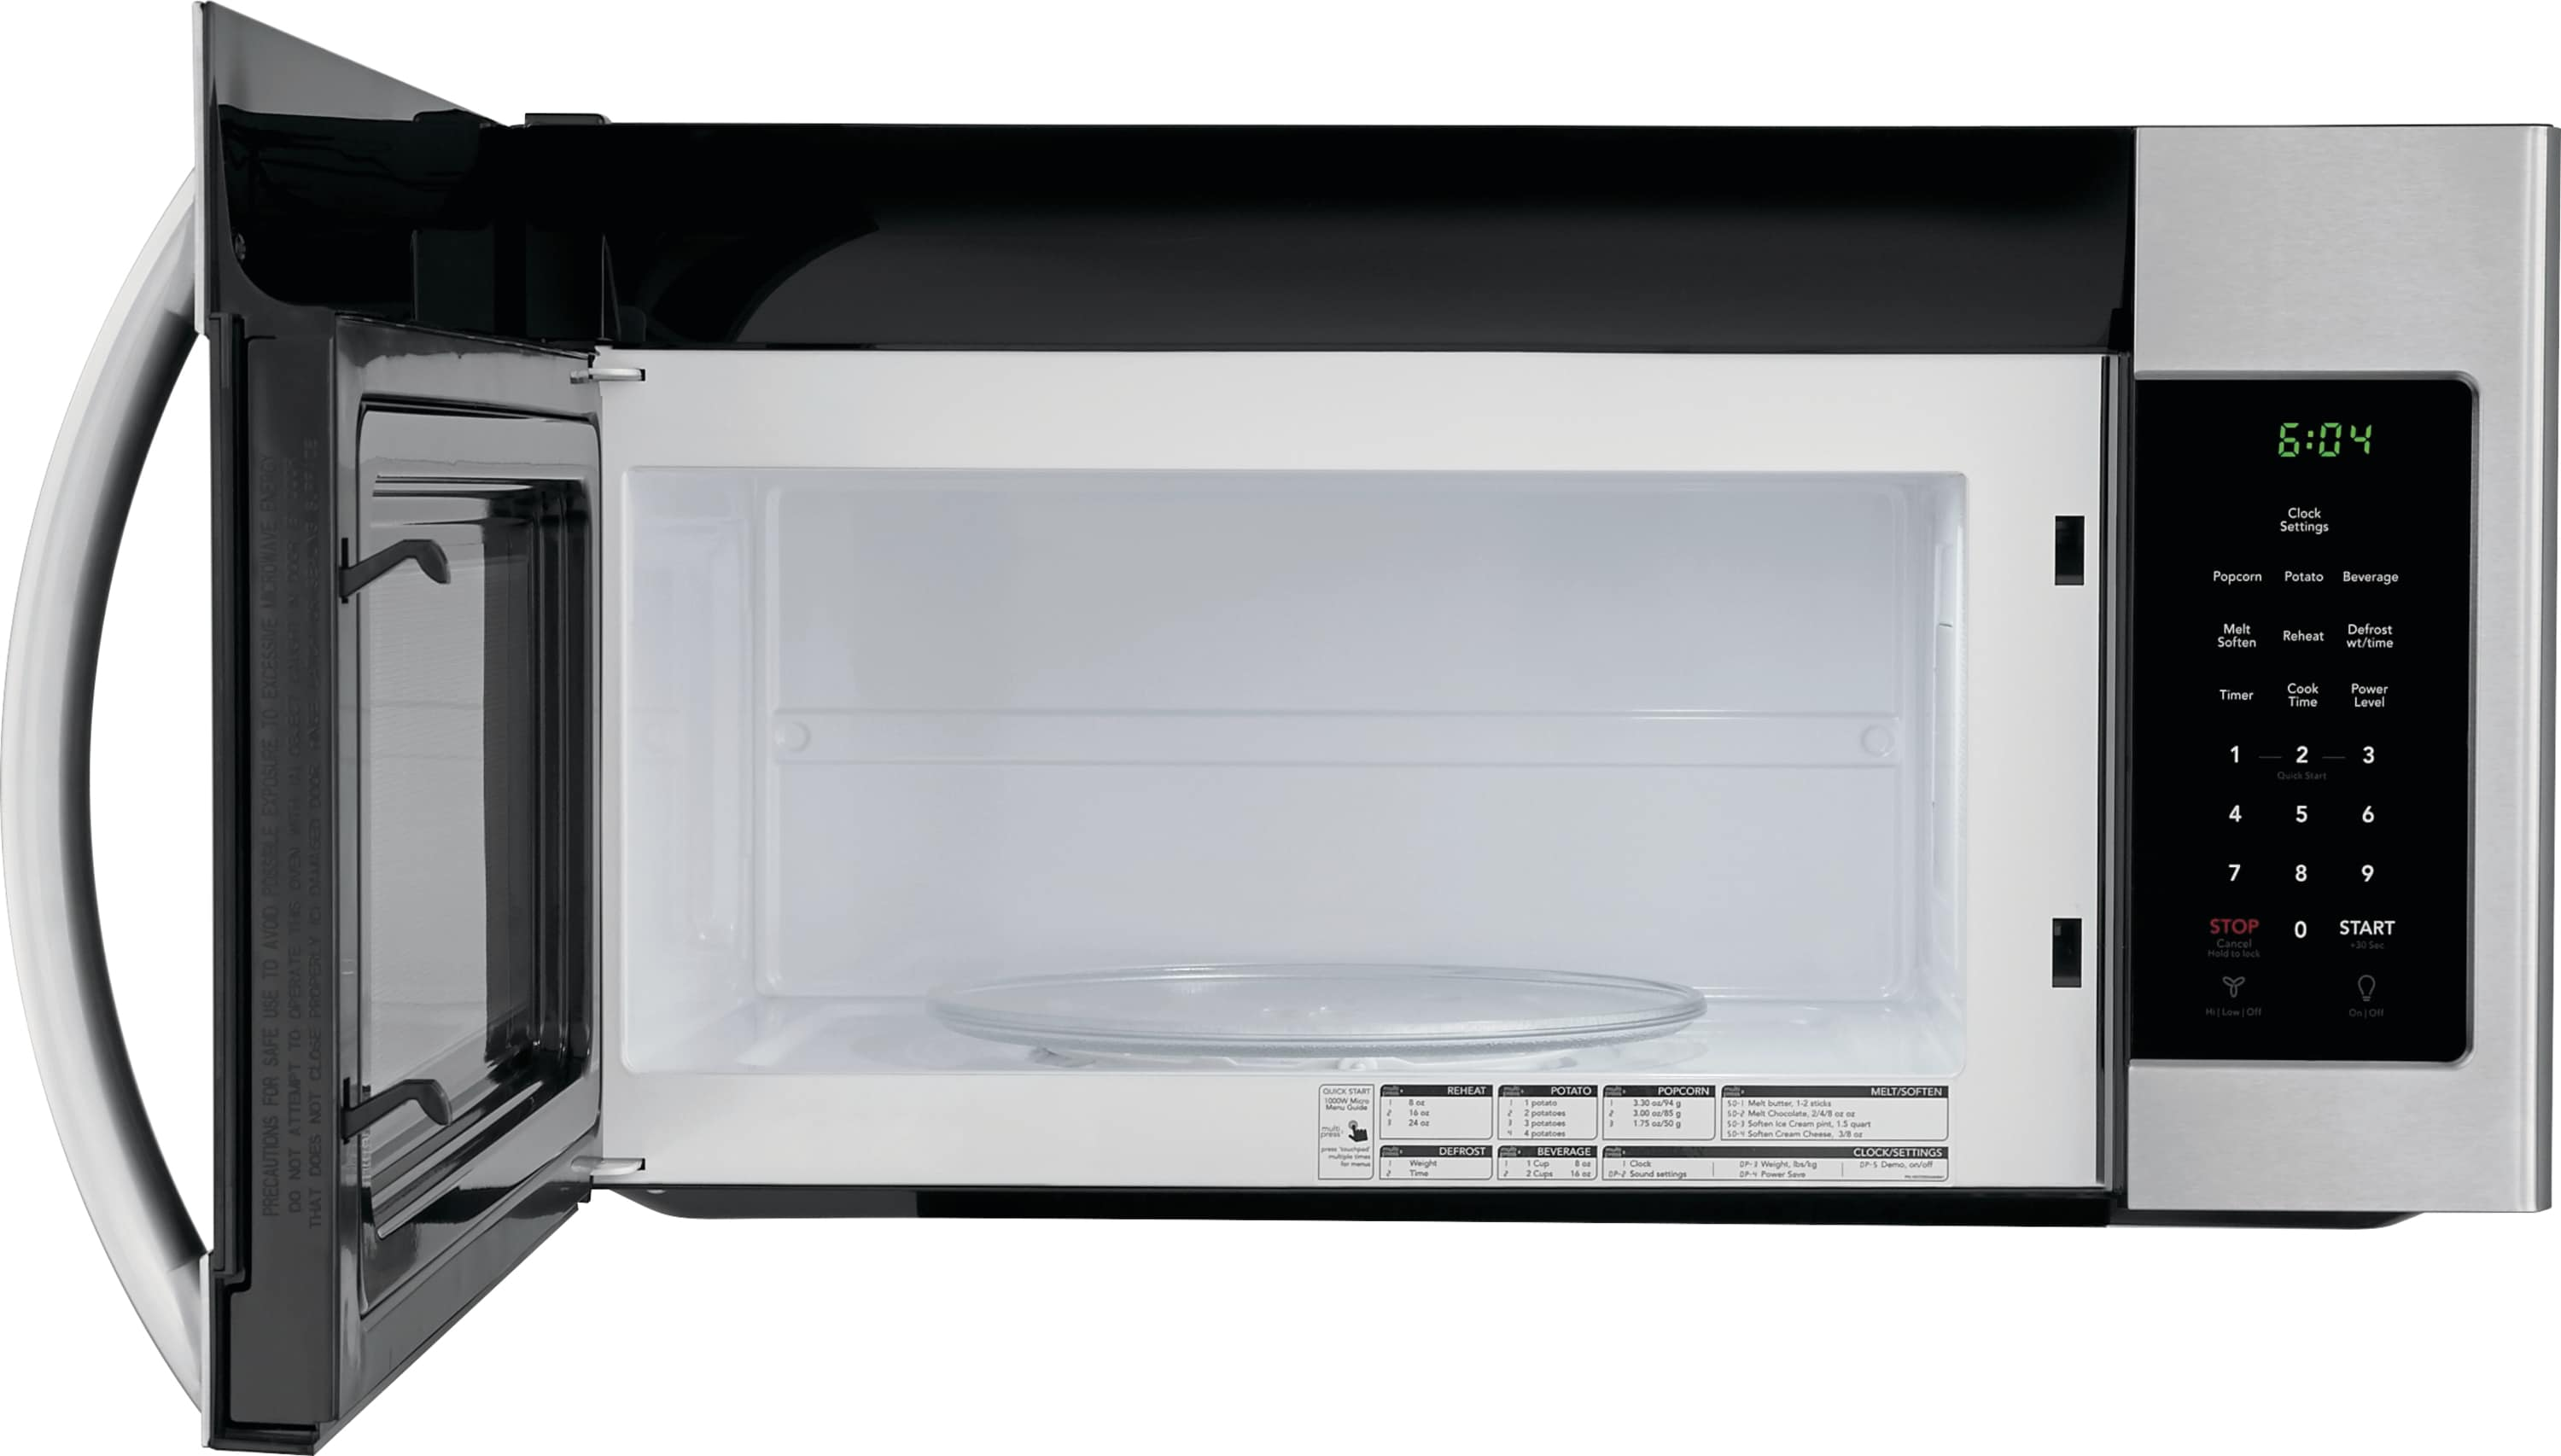 Model: FFMV1645TS | 1.6 Cu. Ft. Over-The-Range Microwave